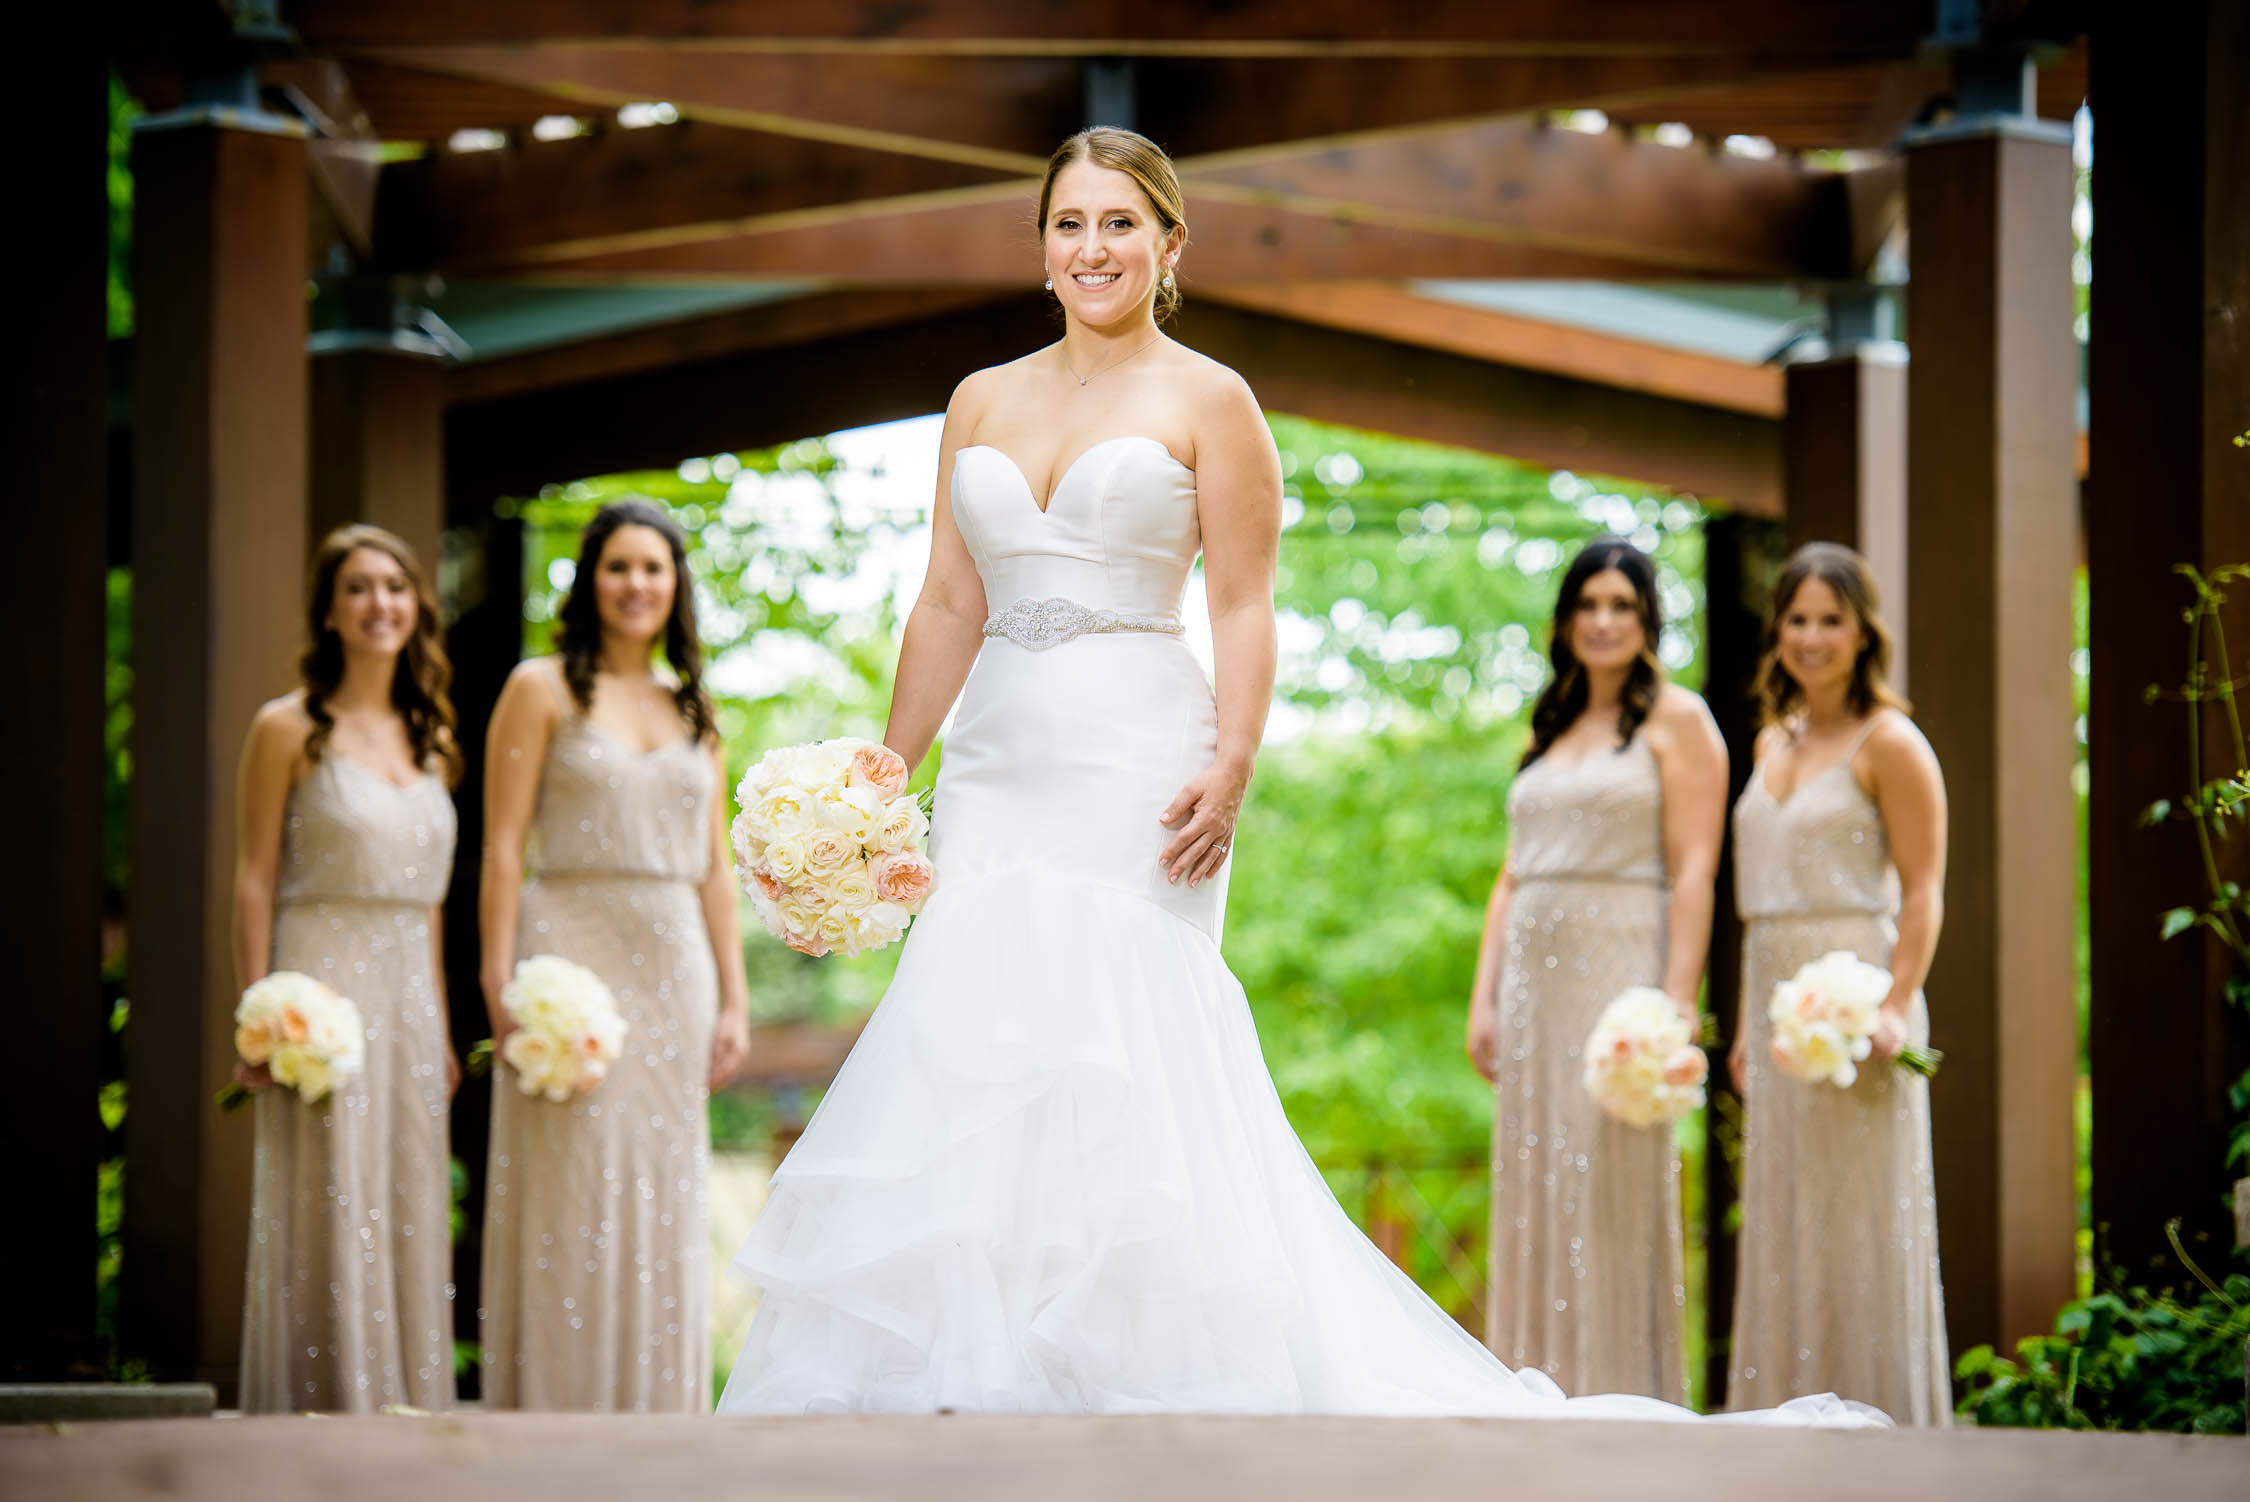 Bride and bridesmaids before a wedding at Independence Grove in Libertyville.